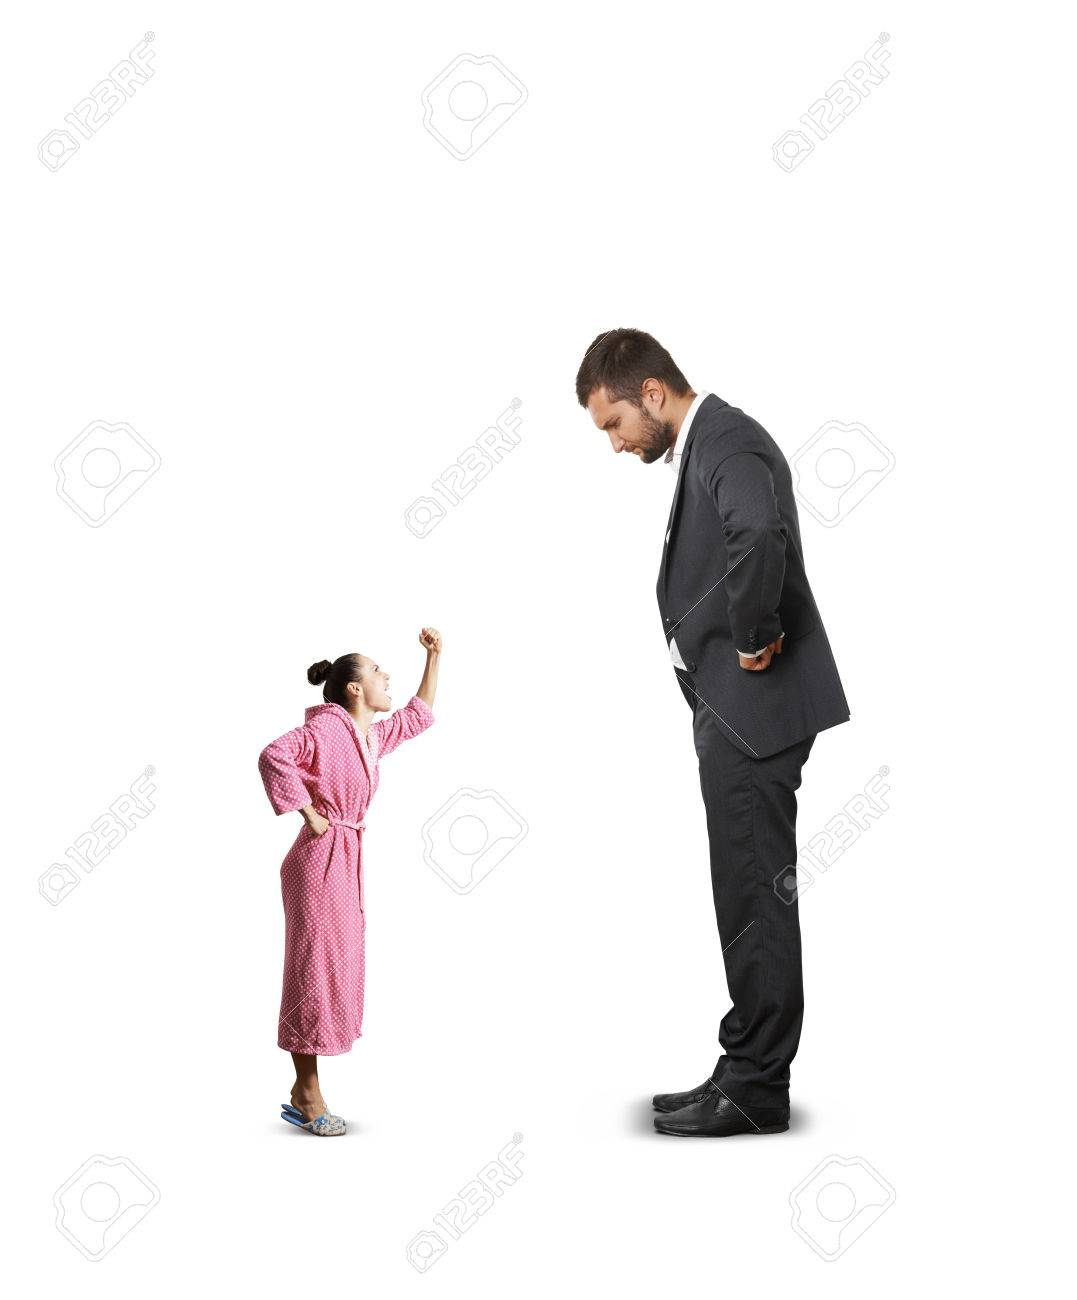 Dissatisfied Man In Black Suit Looking At Small Angry Woman In ...